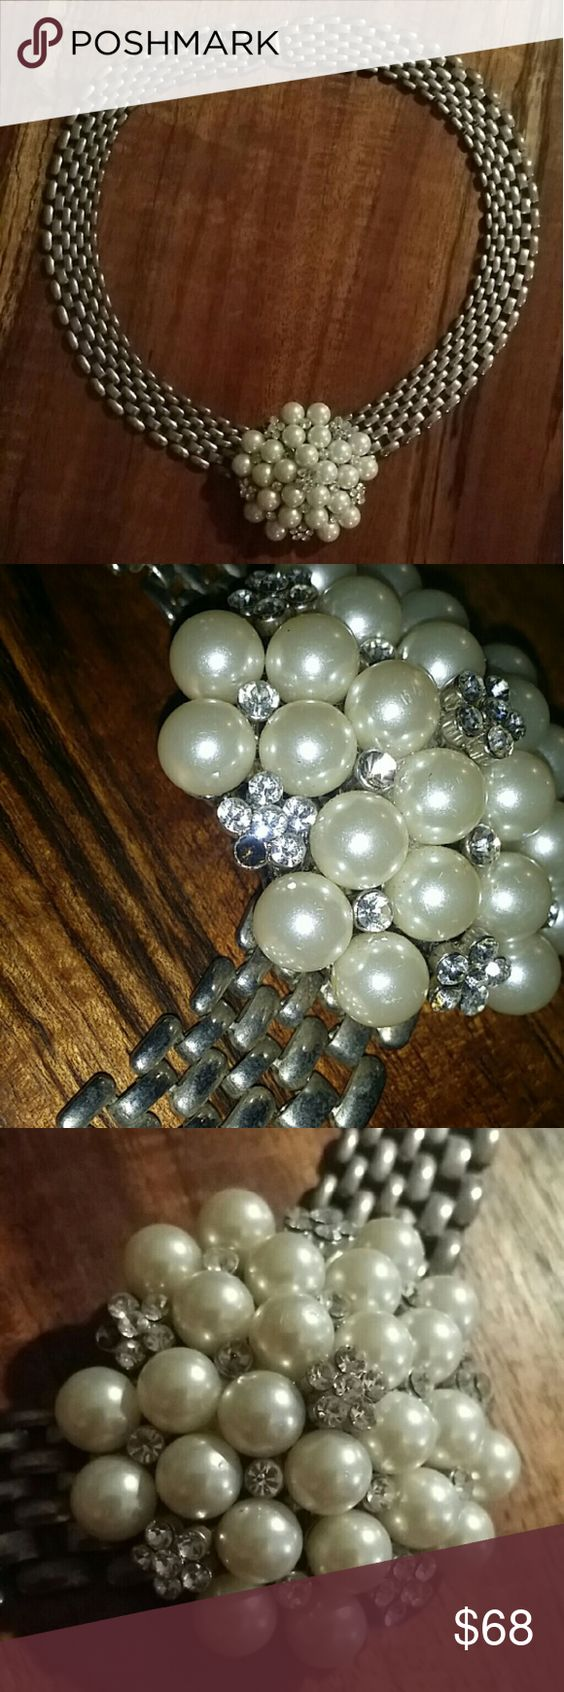 Vintage Large Pearl/Crytal Statement Necklace Beautiful Vintage Necklace set in a silvertone setting. Gorgeous piece for any special occasion! Missing a stone as seen in pic #2 otherwise, its in excellent vintage condition.  Missing stone can easily be replaced or wear as is. Not noticeable when wearing unless your looking for it. Jewelry Necklaces